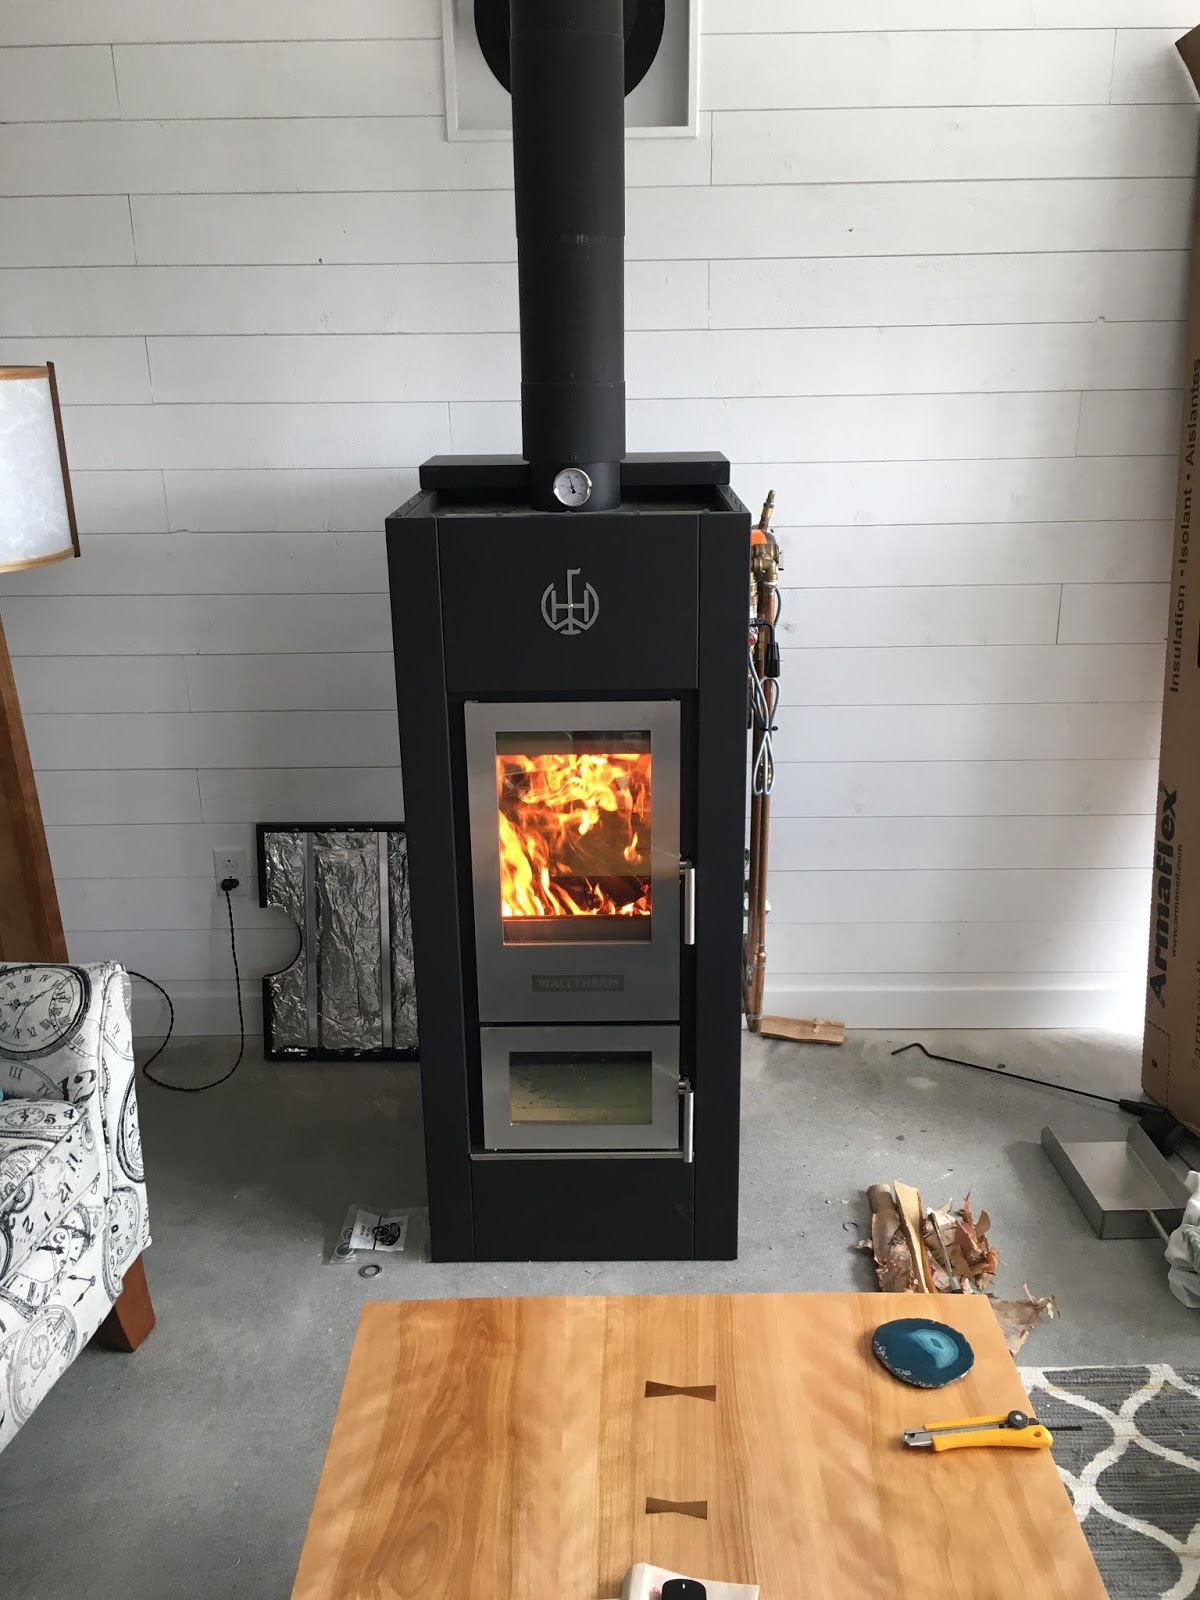 fire it up commissioning the hydronic heating system